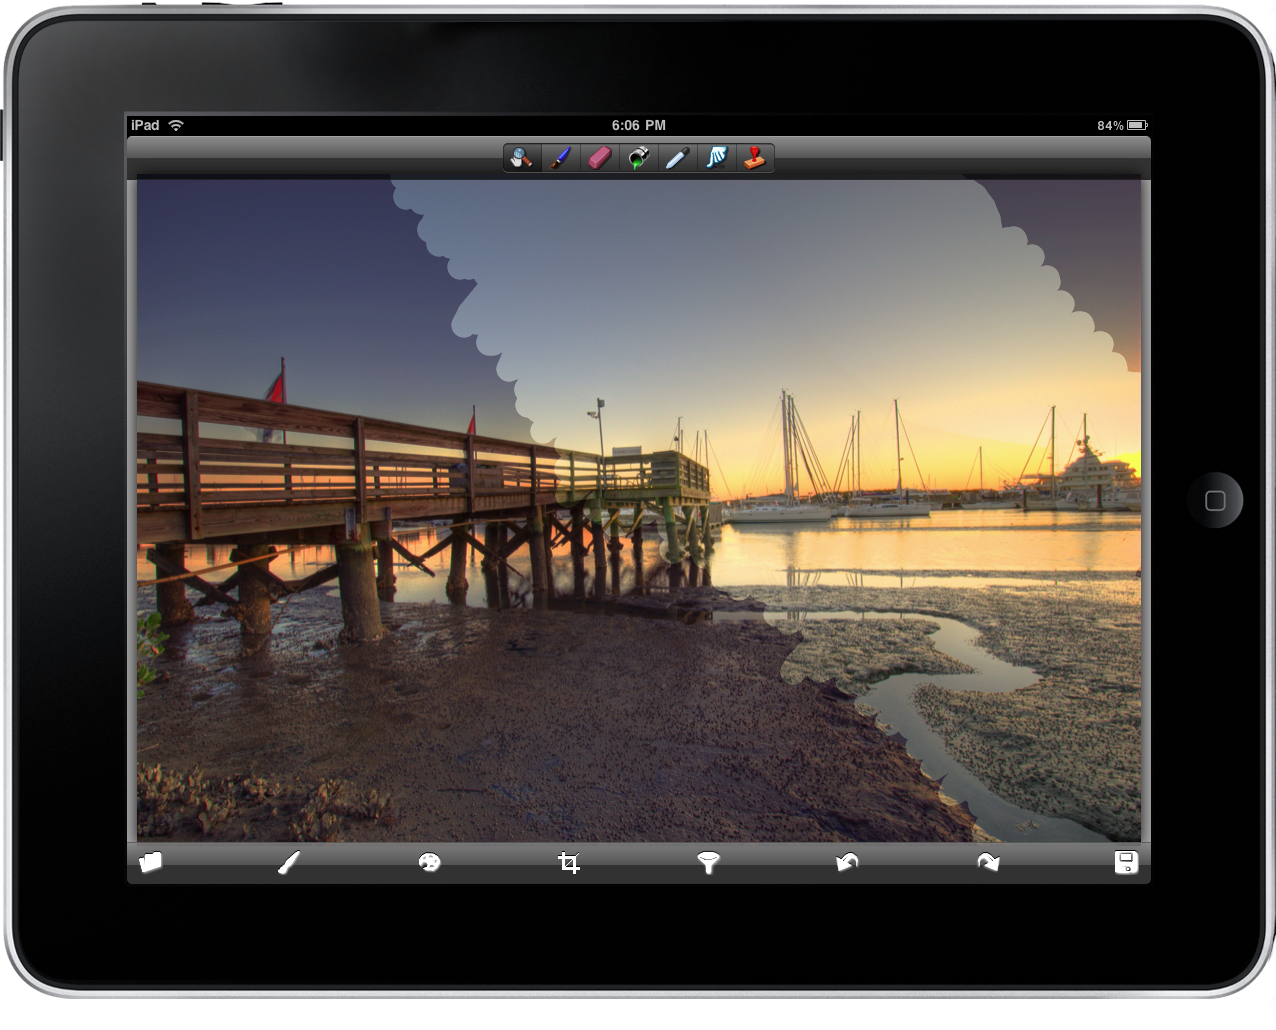 how to get erased photos on ipad